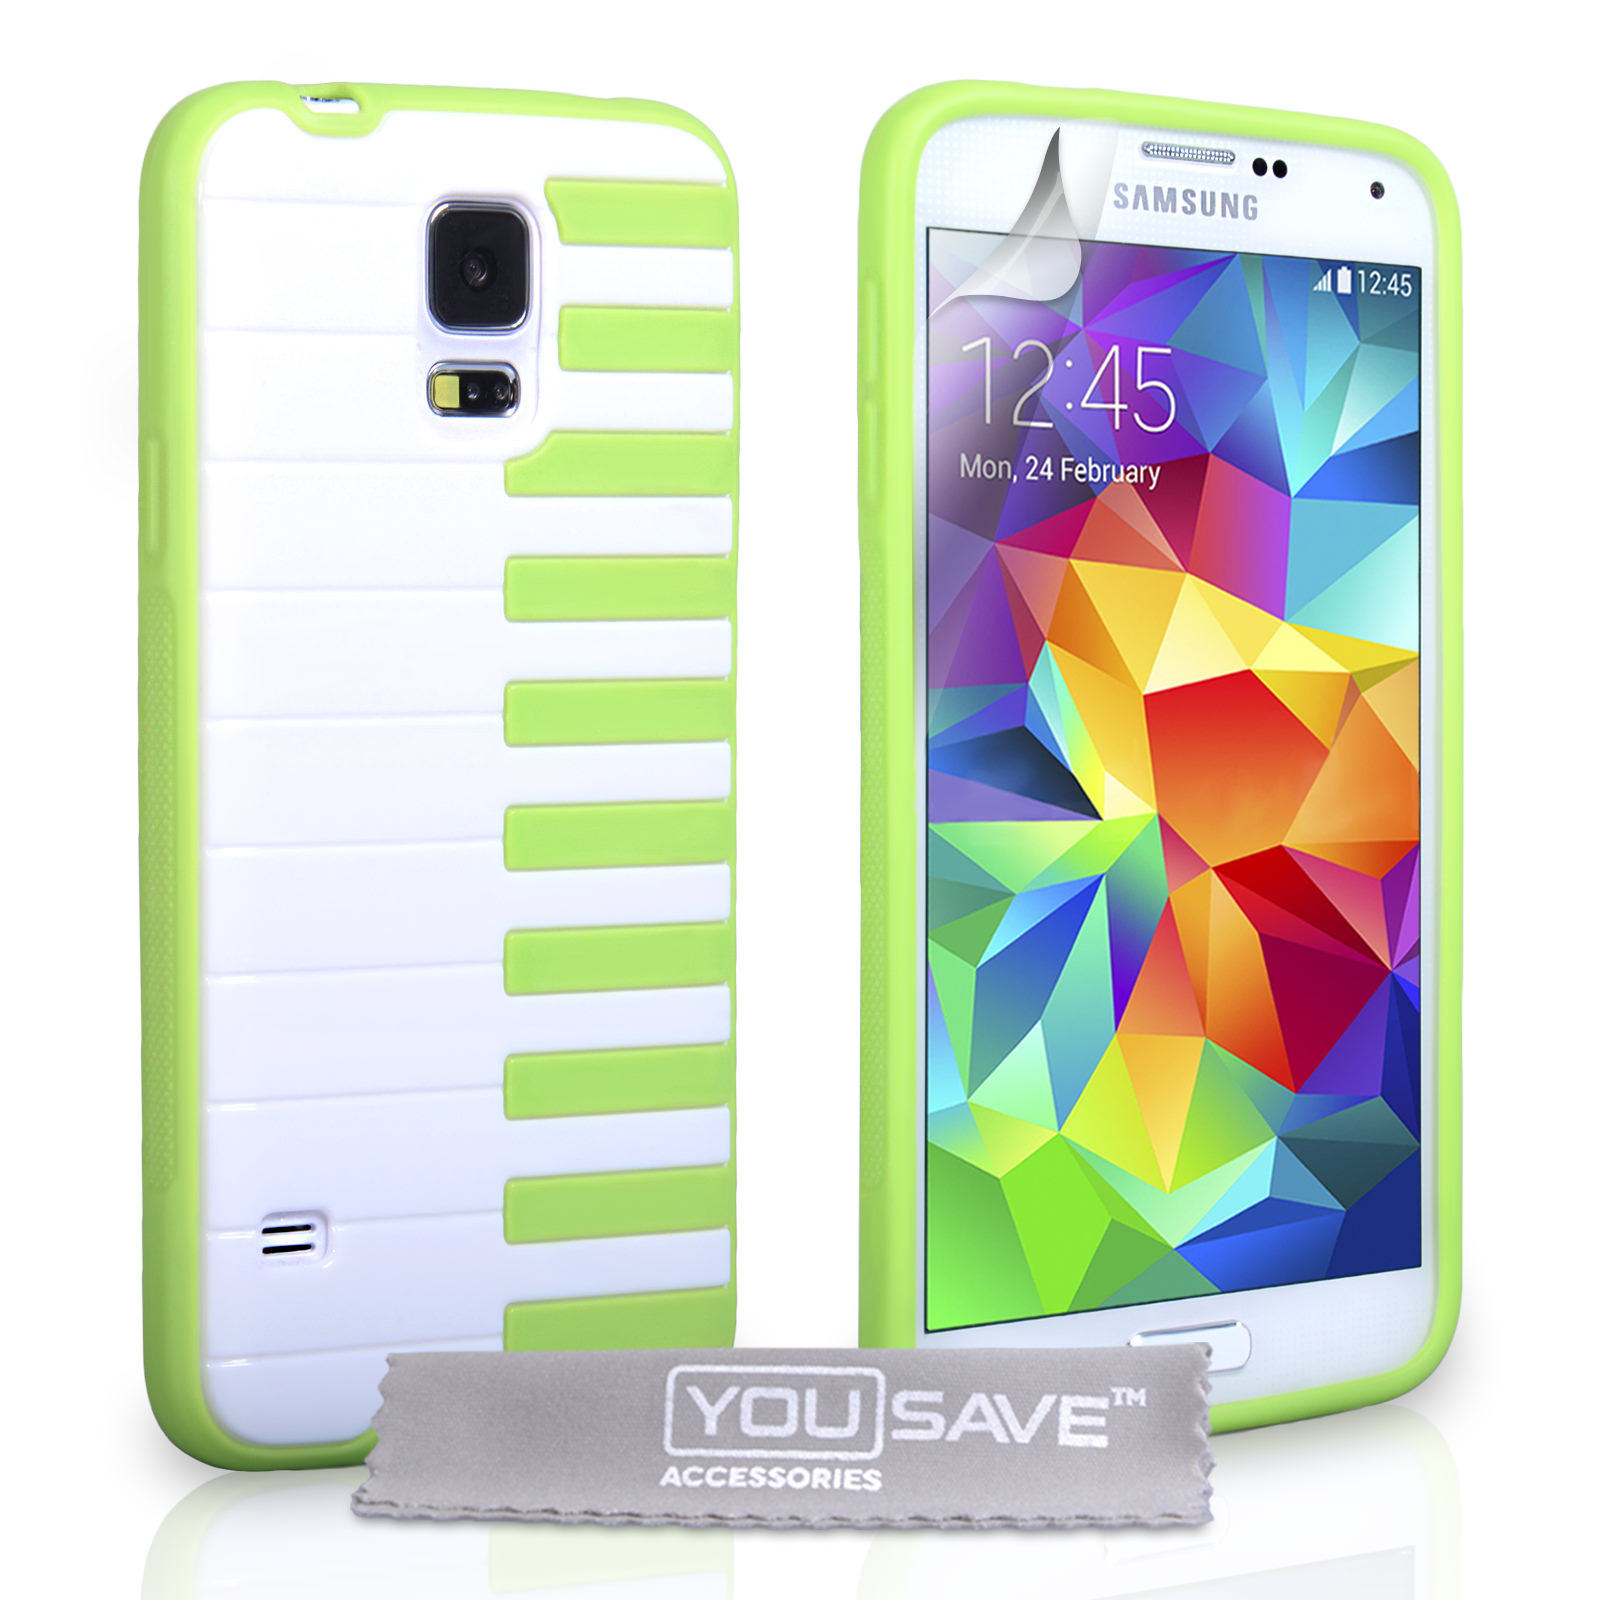 YouSave Accessories Samsung Galaxy S5 Piano Gel Case  - Green